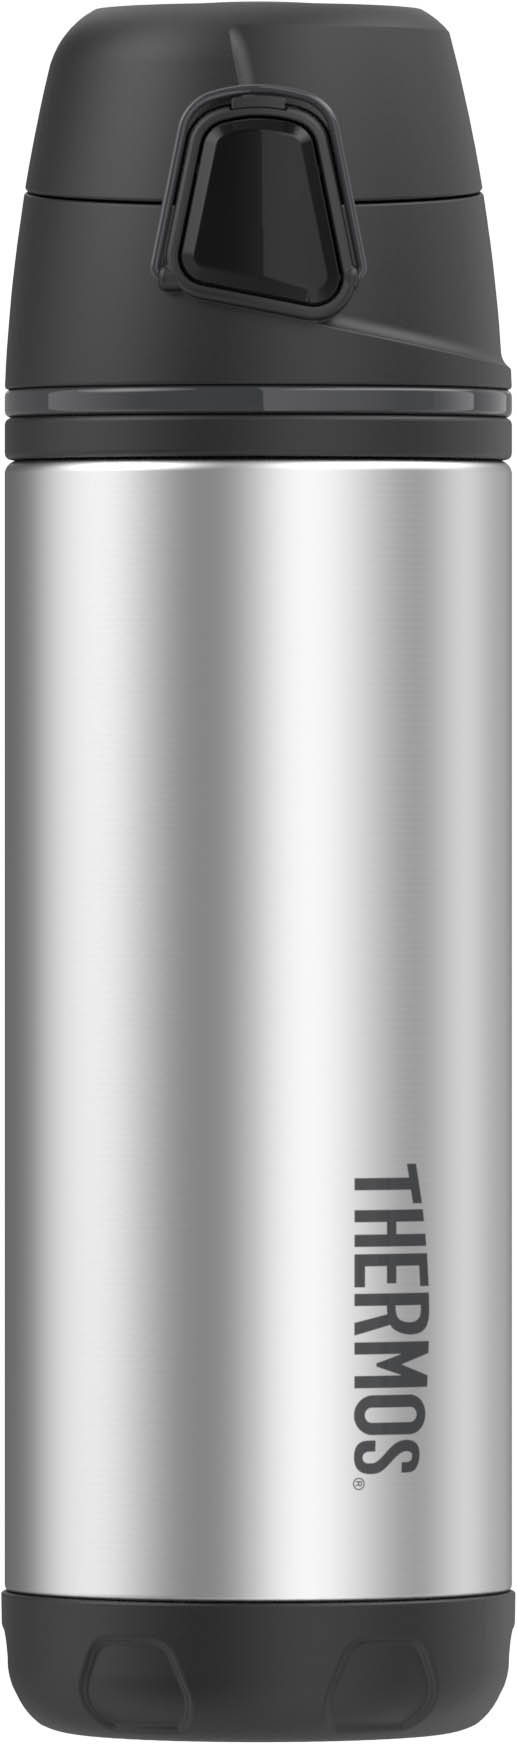 Thermos ELEMENT5 16 Ounce Vacuum Insulated Stainless Steel Backpack Bottle, Black/Gray